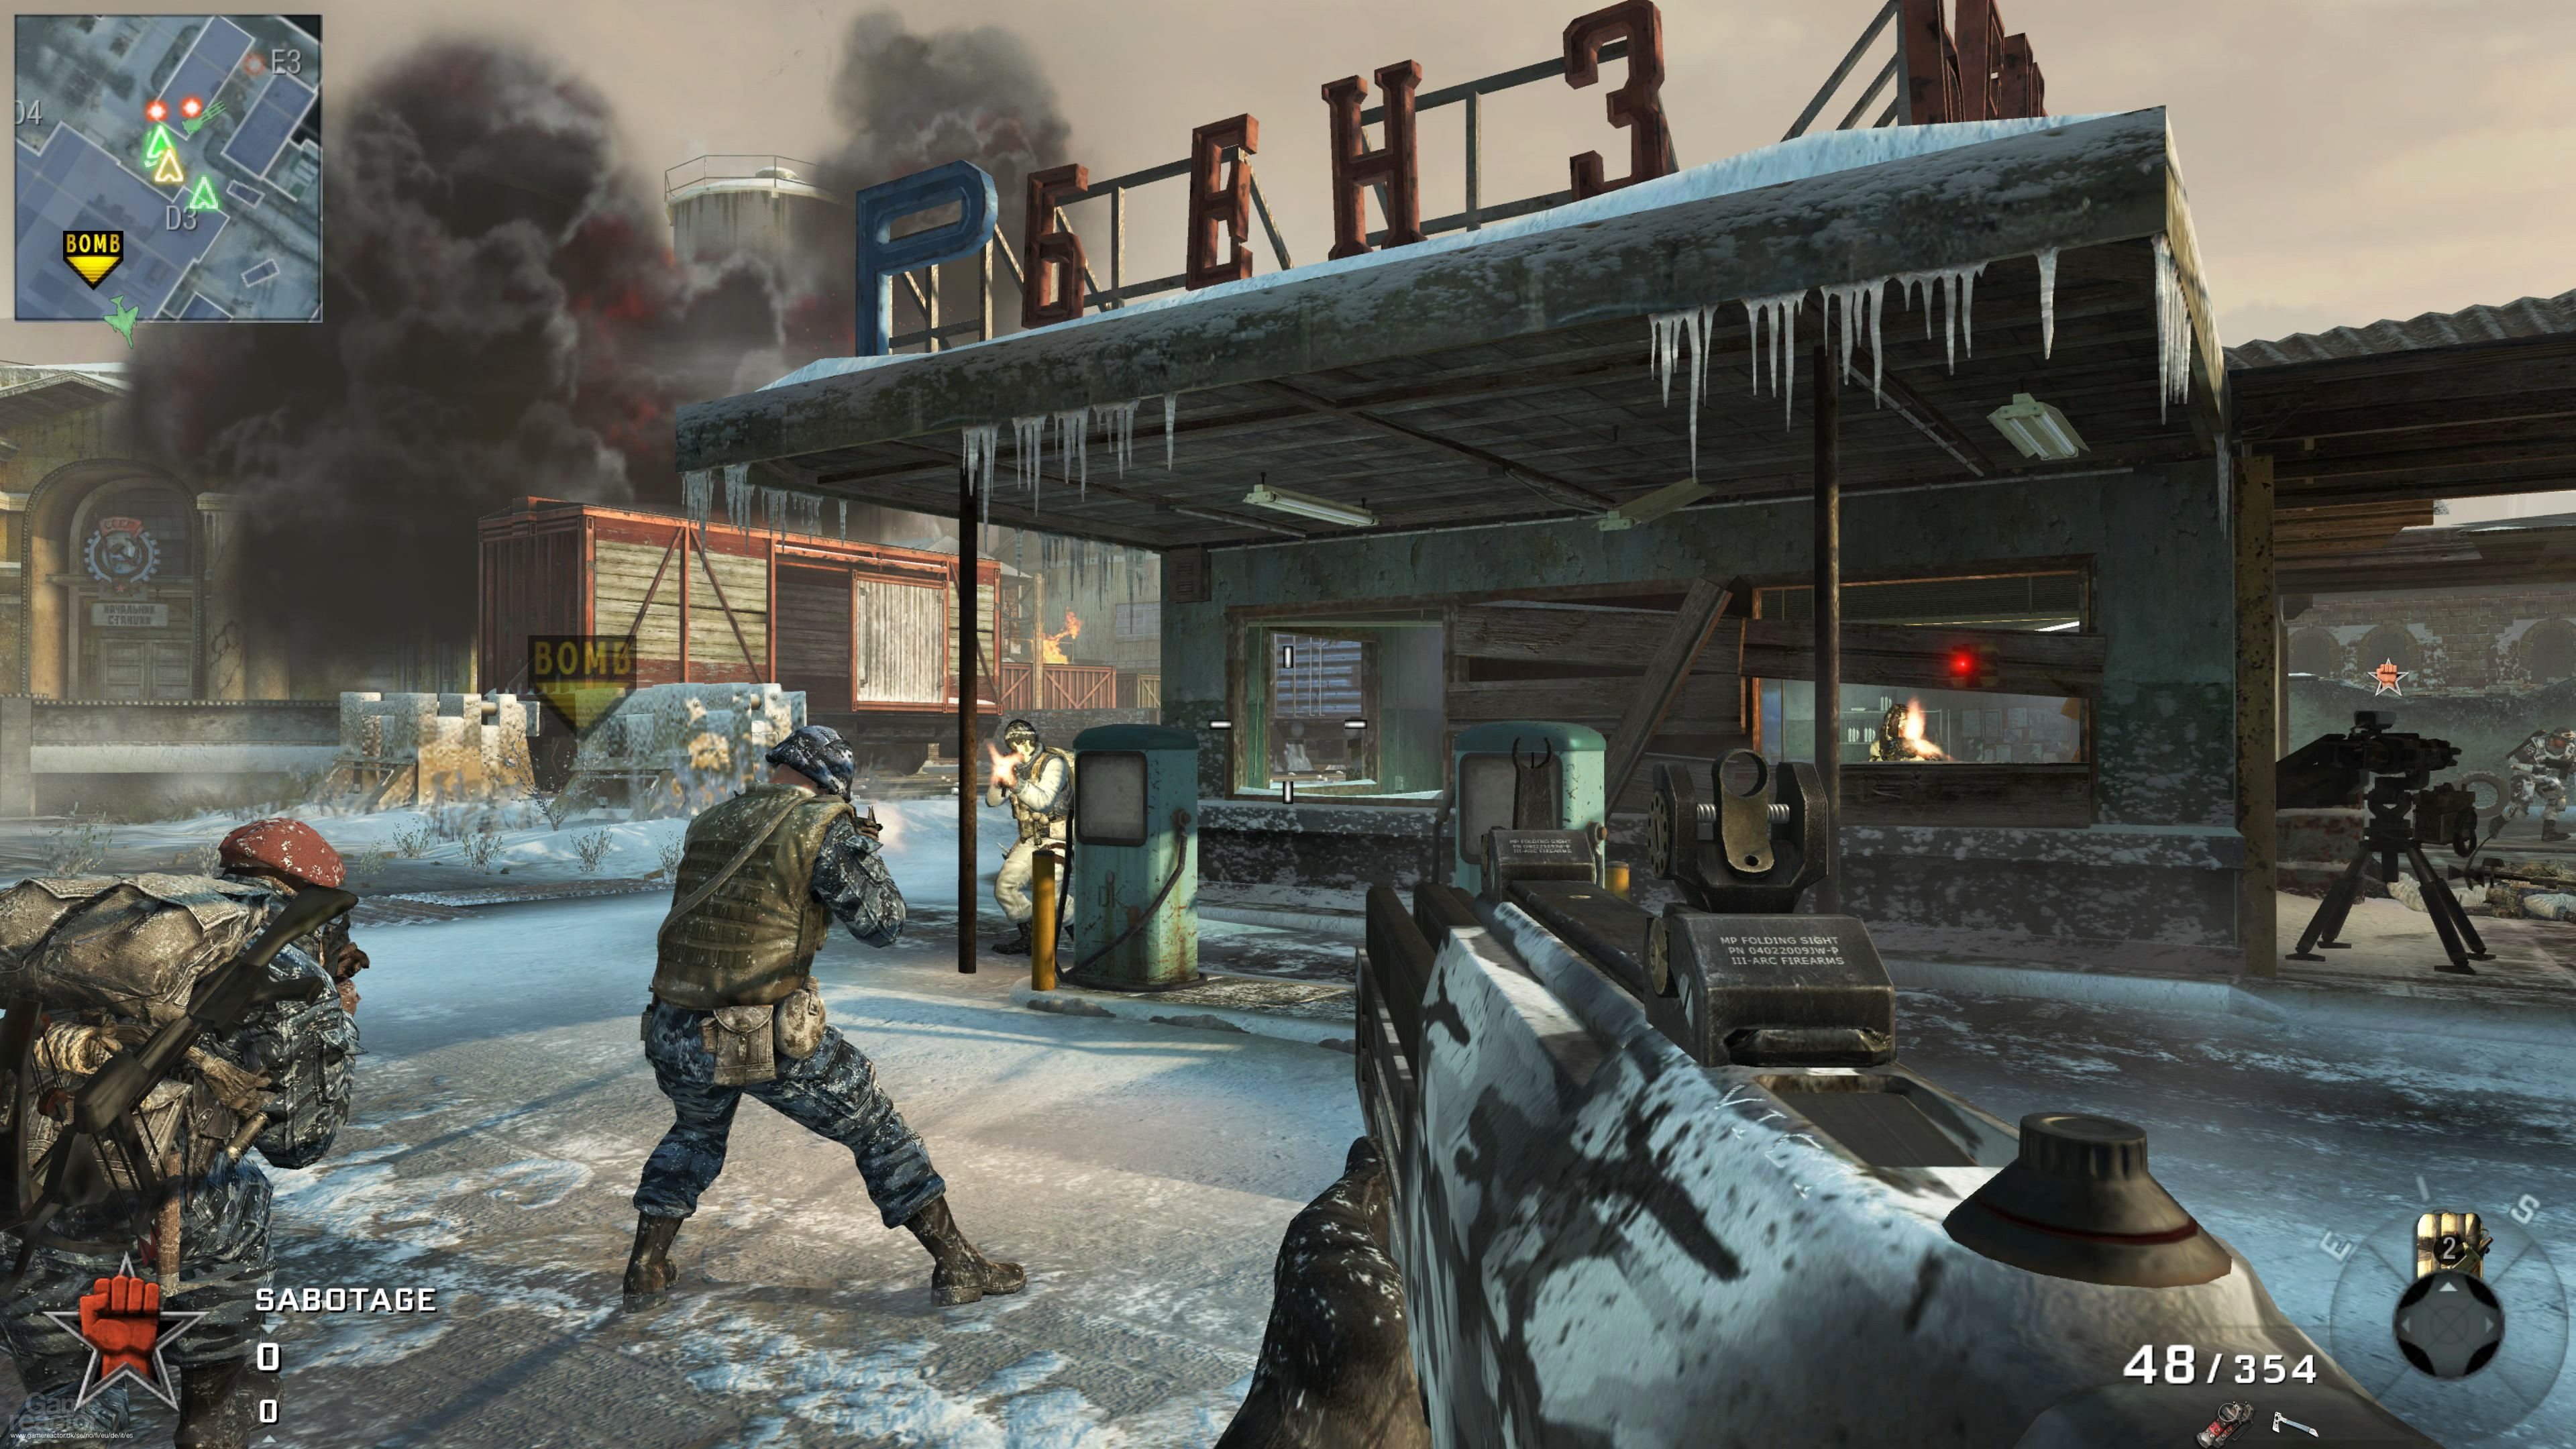 Pictures of Black Ops expansion out now 2/14